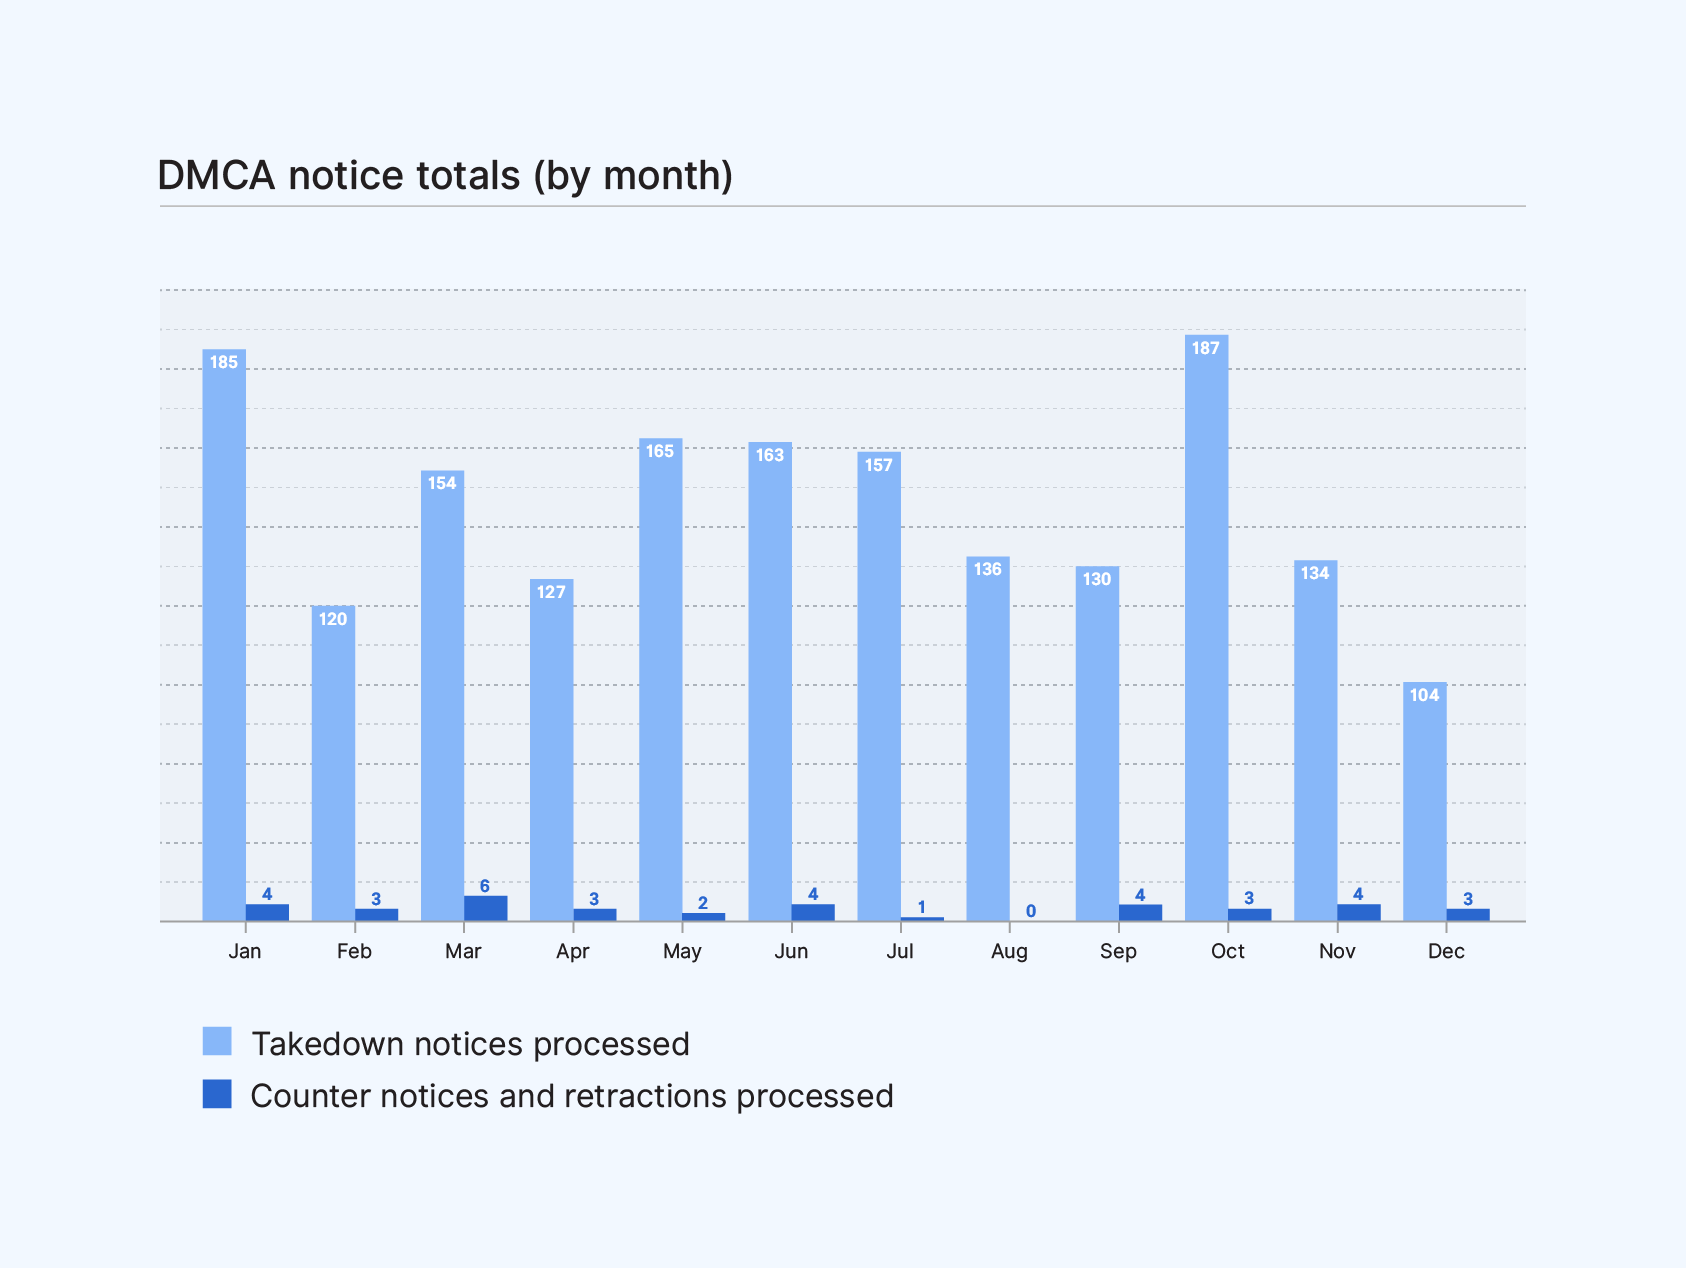 Bar graph of DMCA notice totals by month comparing takedown notices processed to counter notices and retractions processed.